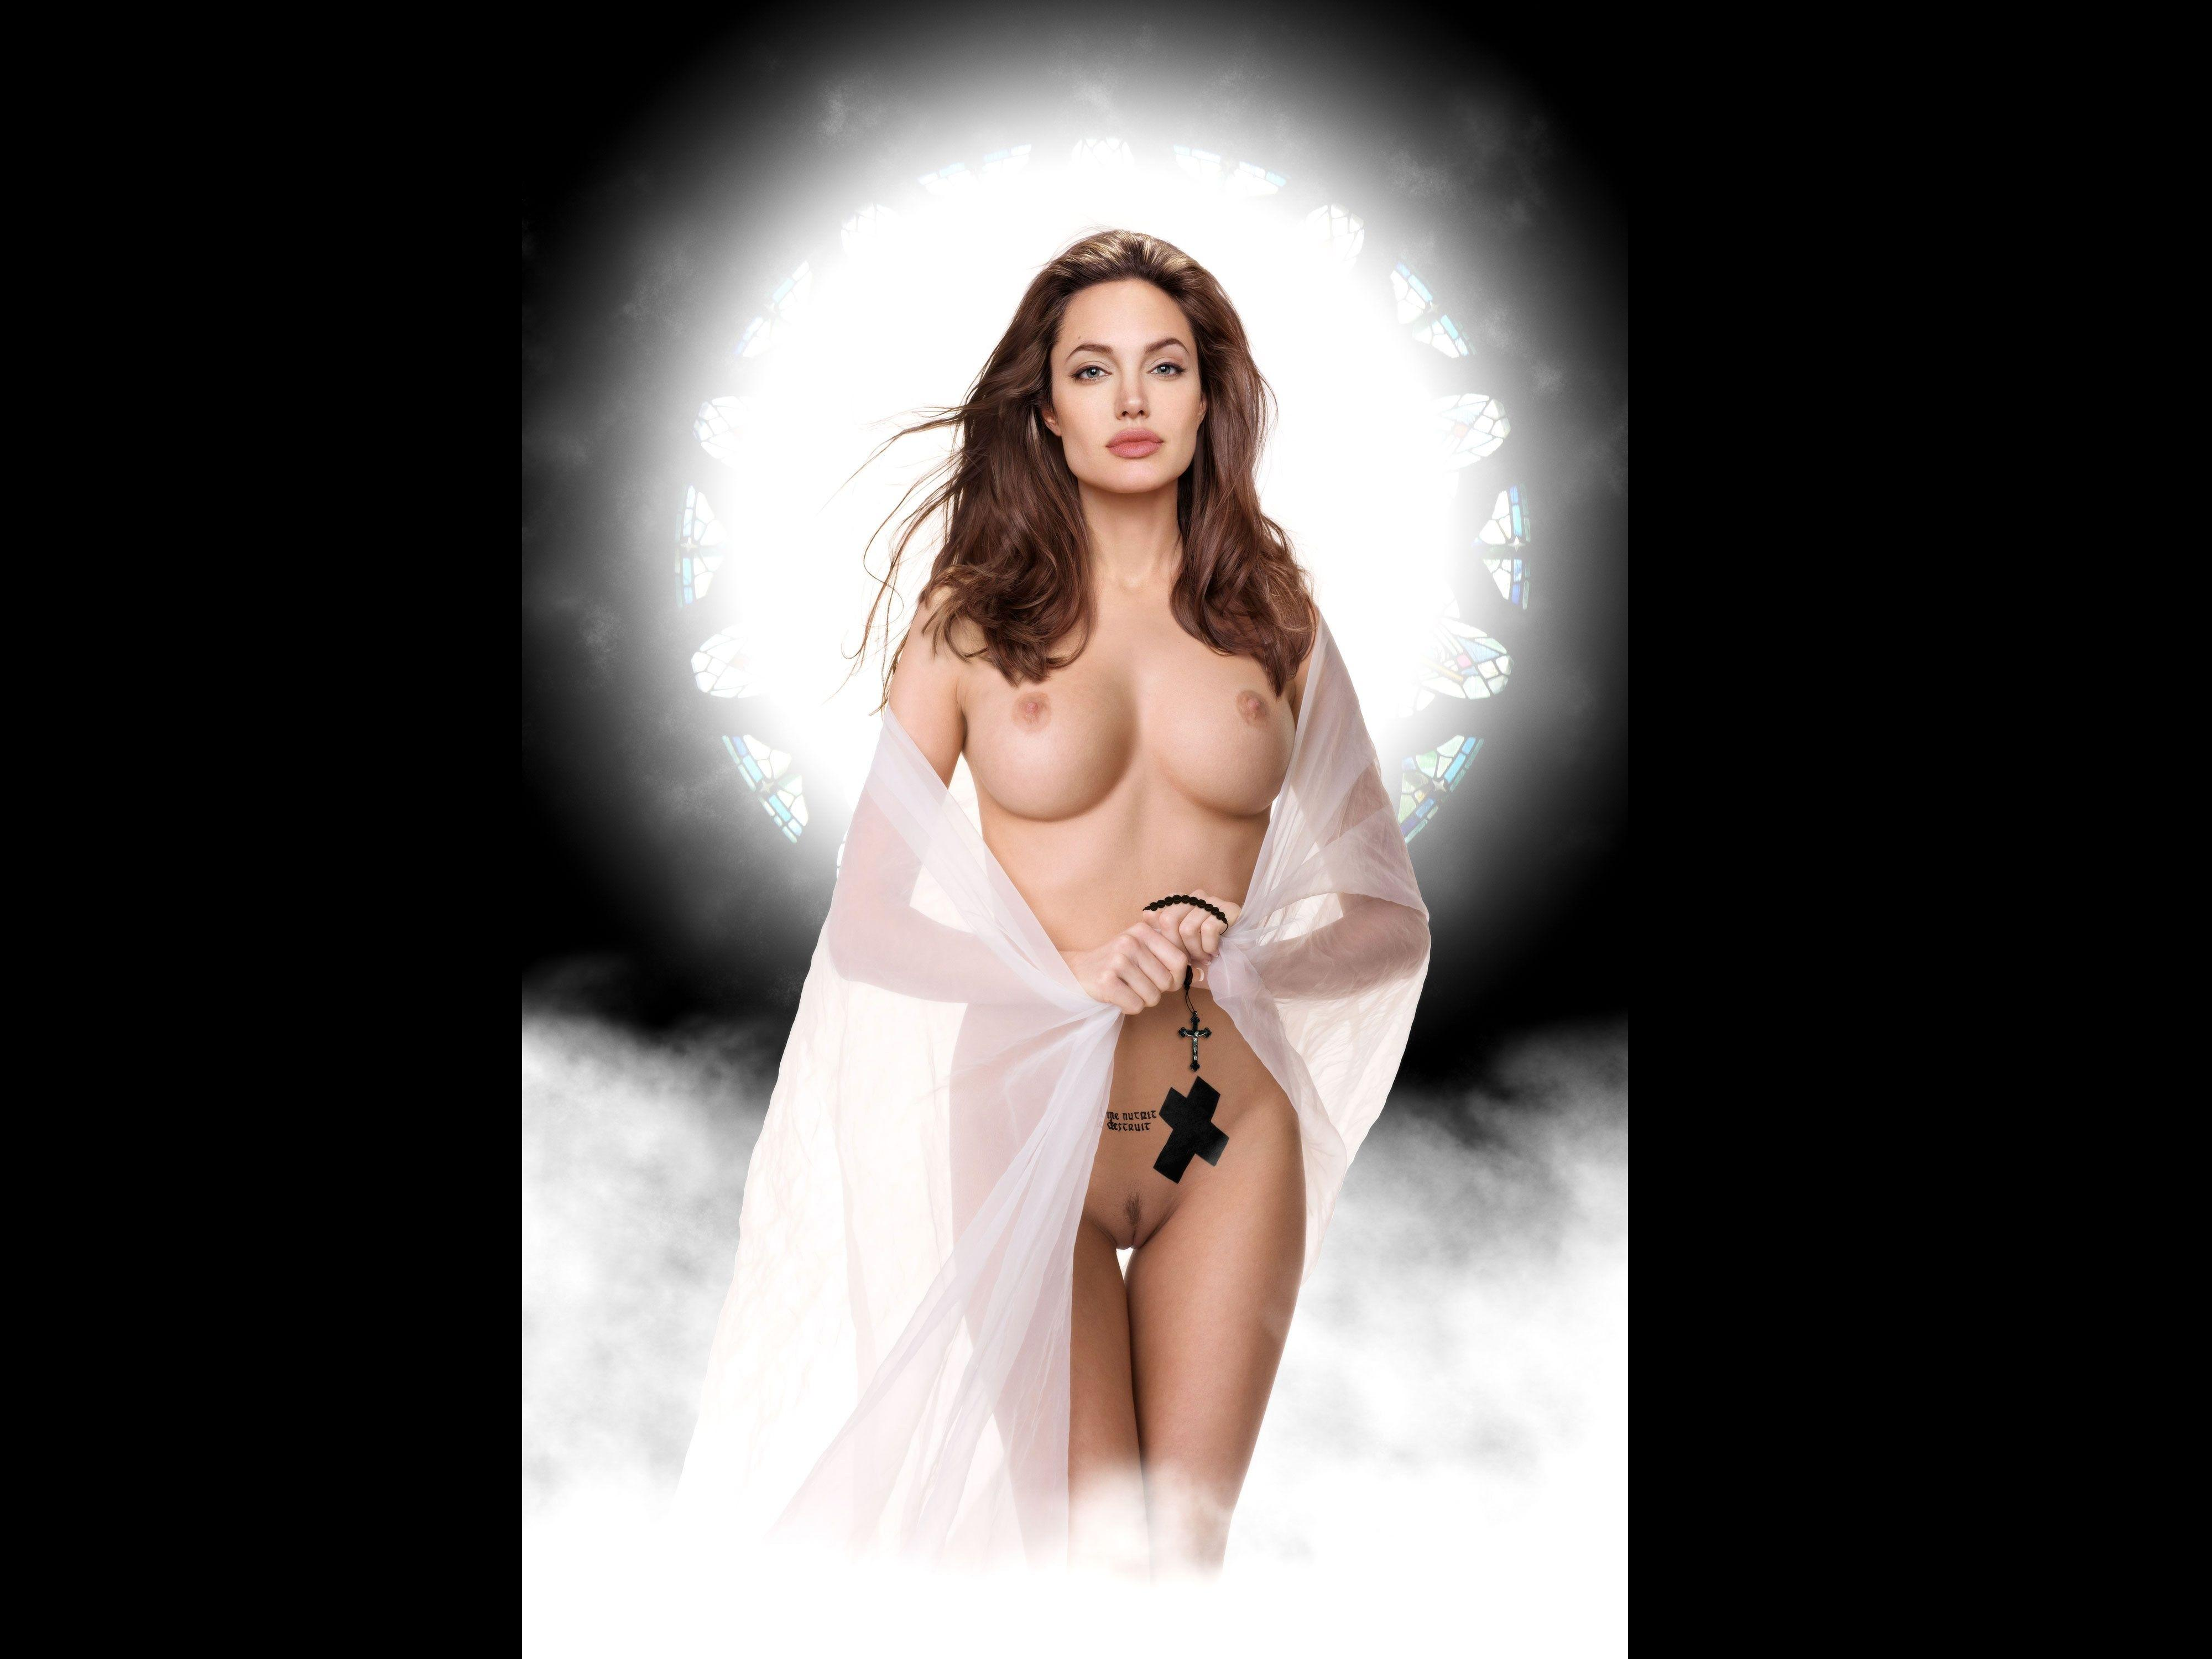 Angelina Jolie Naked Sex Video angelina jolie naked wallpaper - nude images. comments: 5